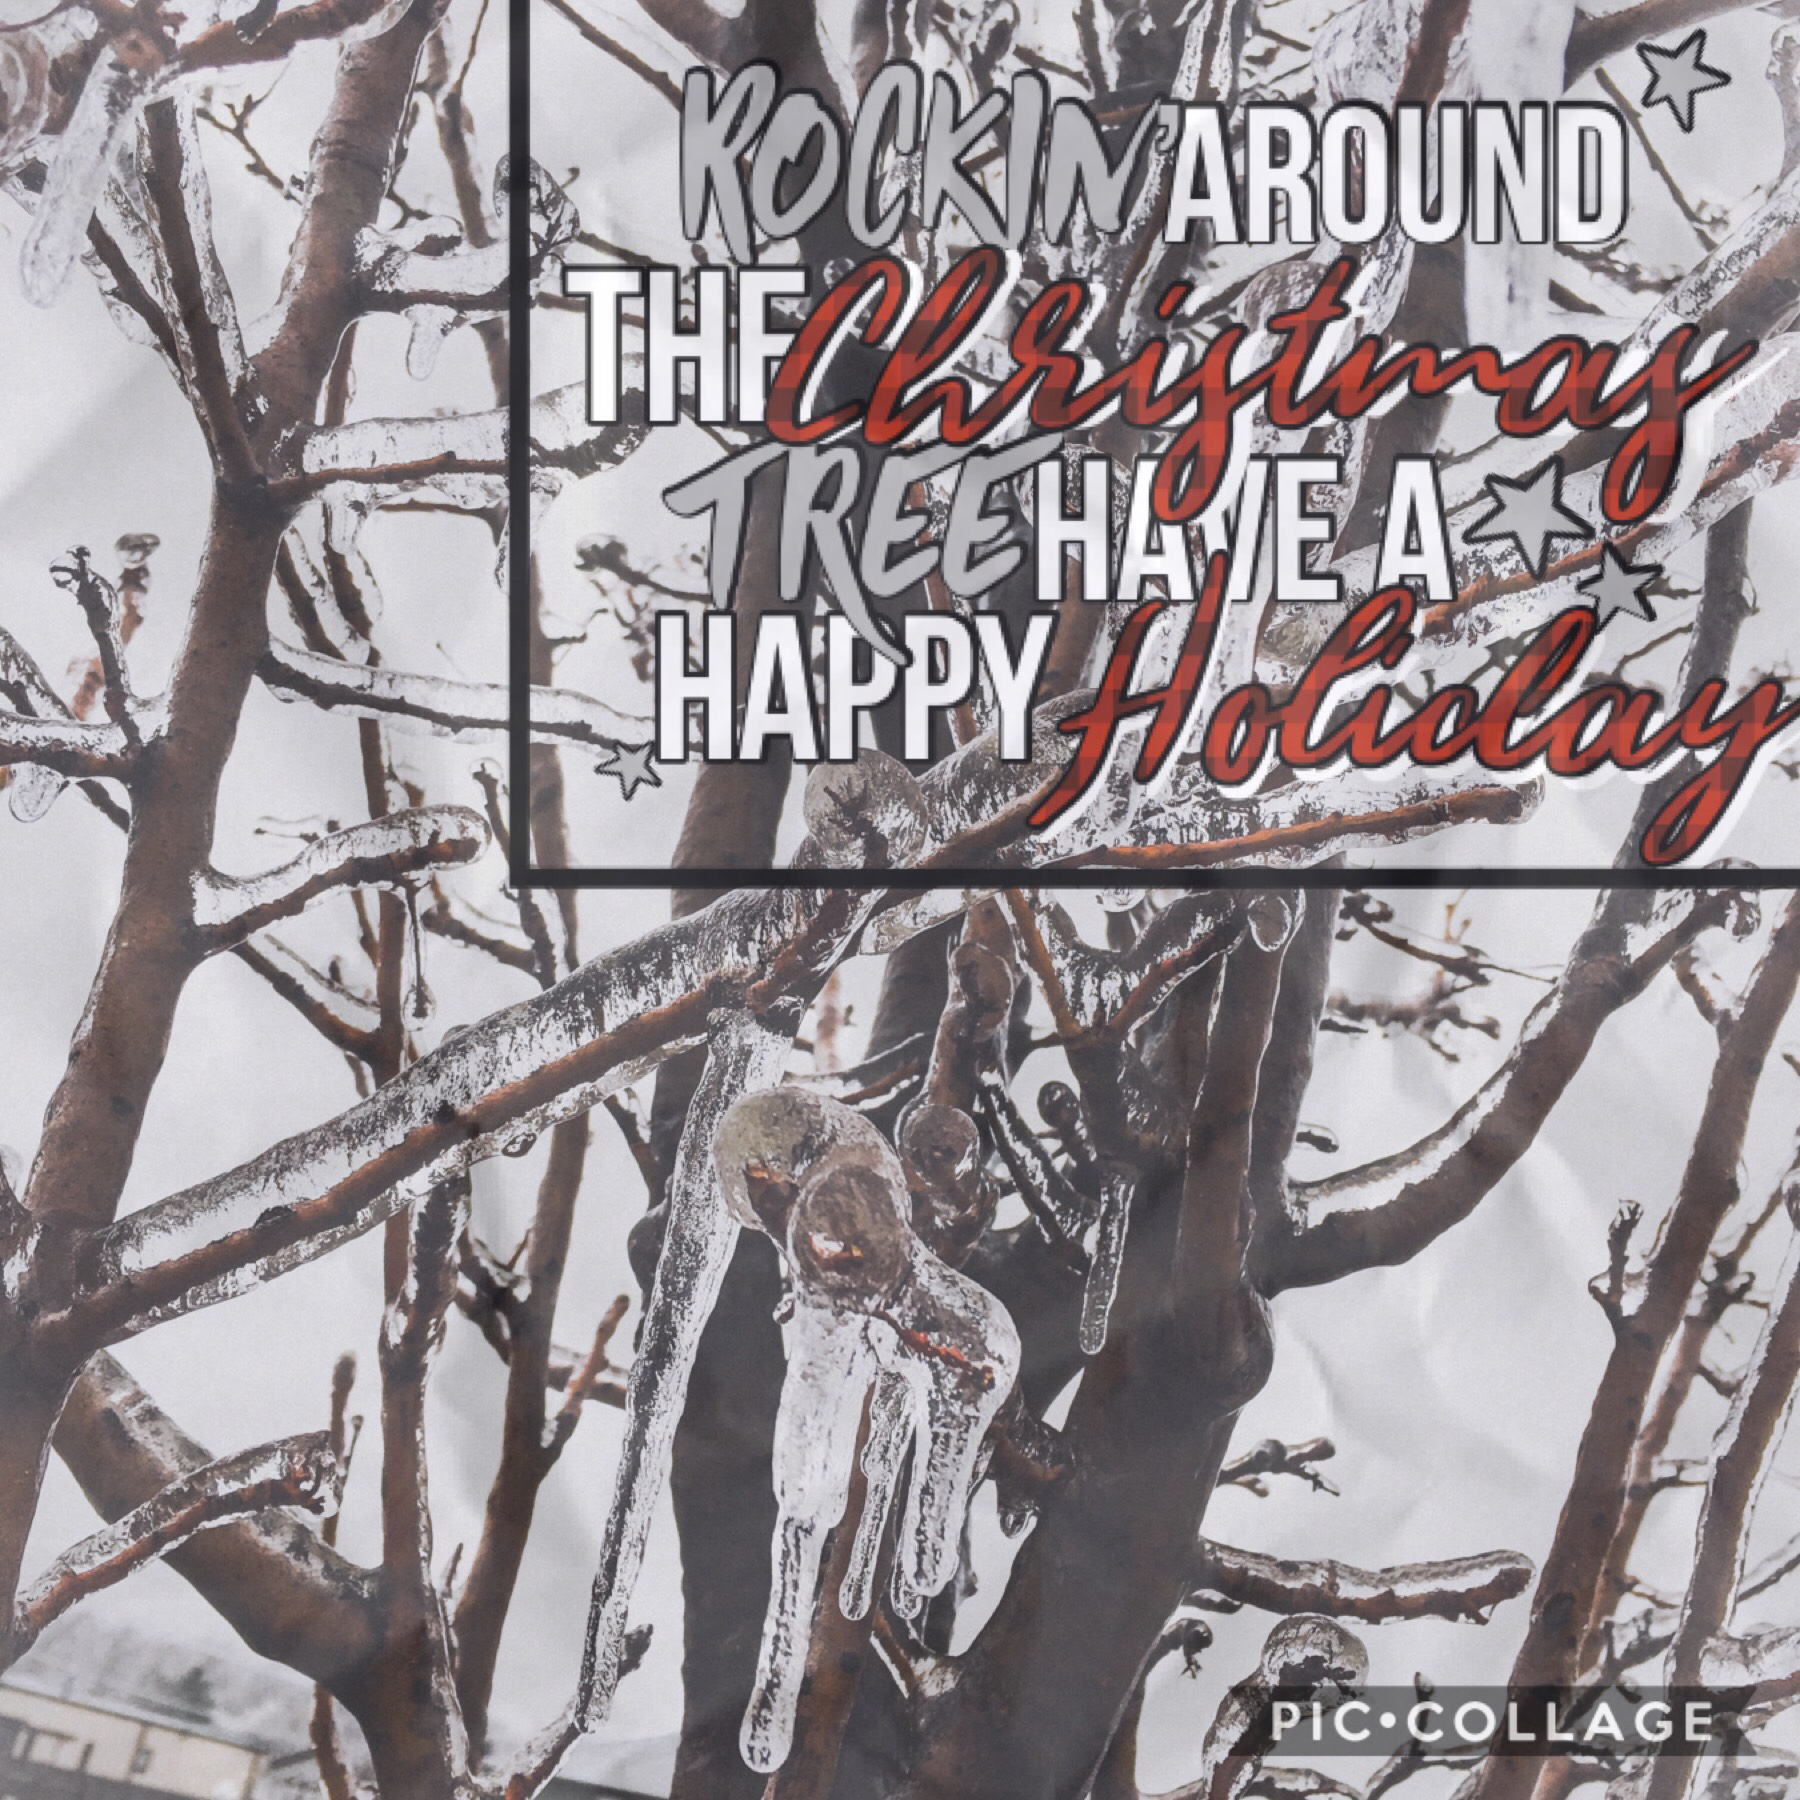 I took this picture in an ice storm last winter.